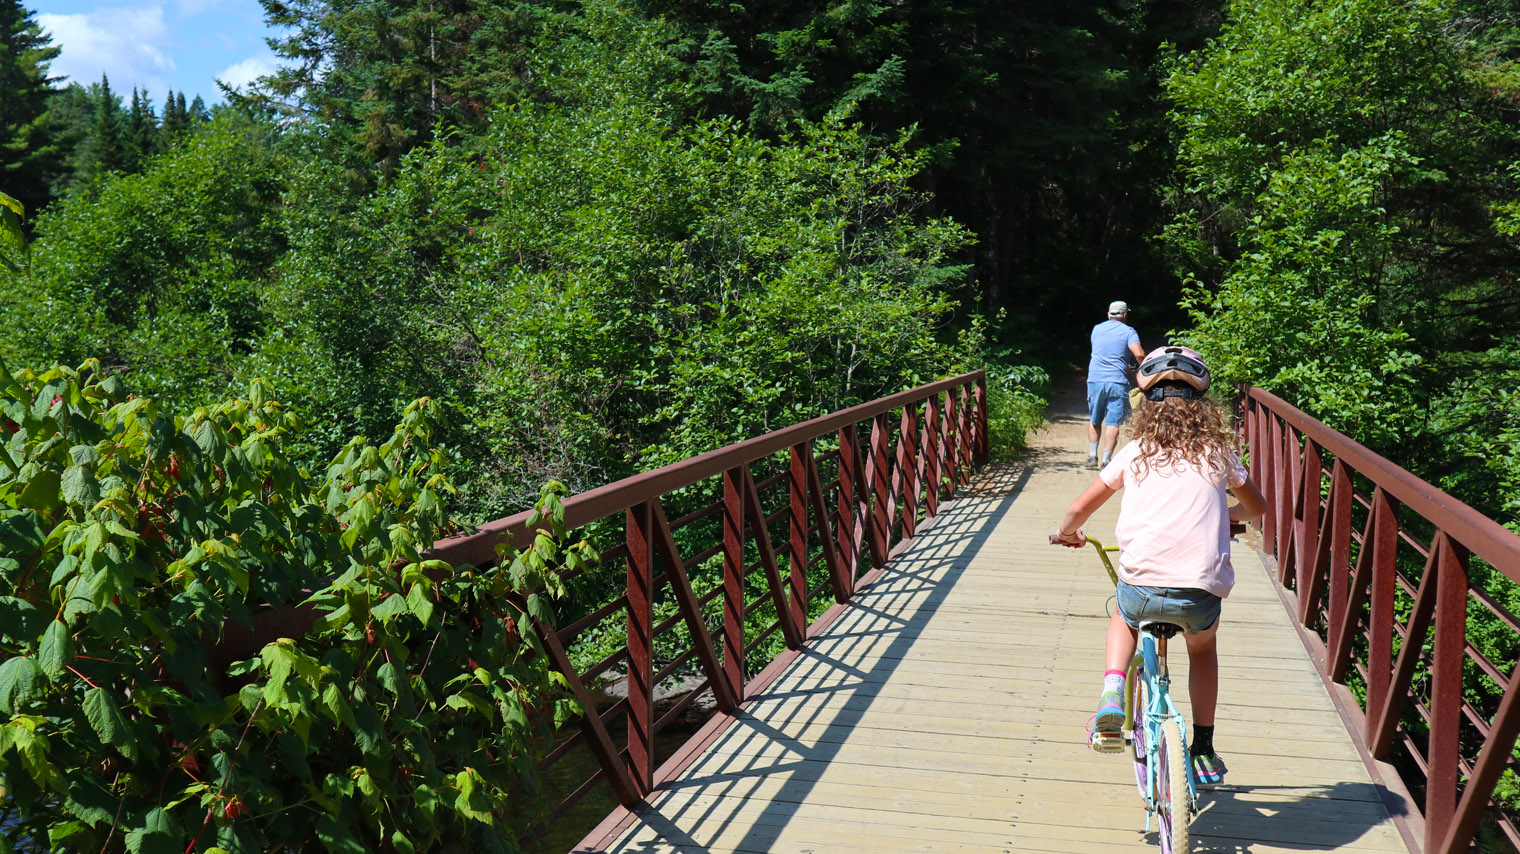 Rent a Bike & Breeze along the Old Algonquin Railway